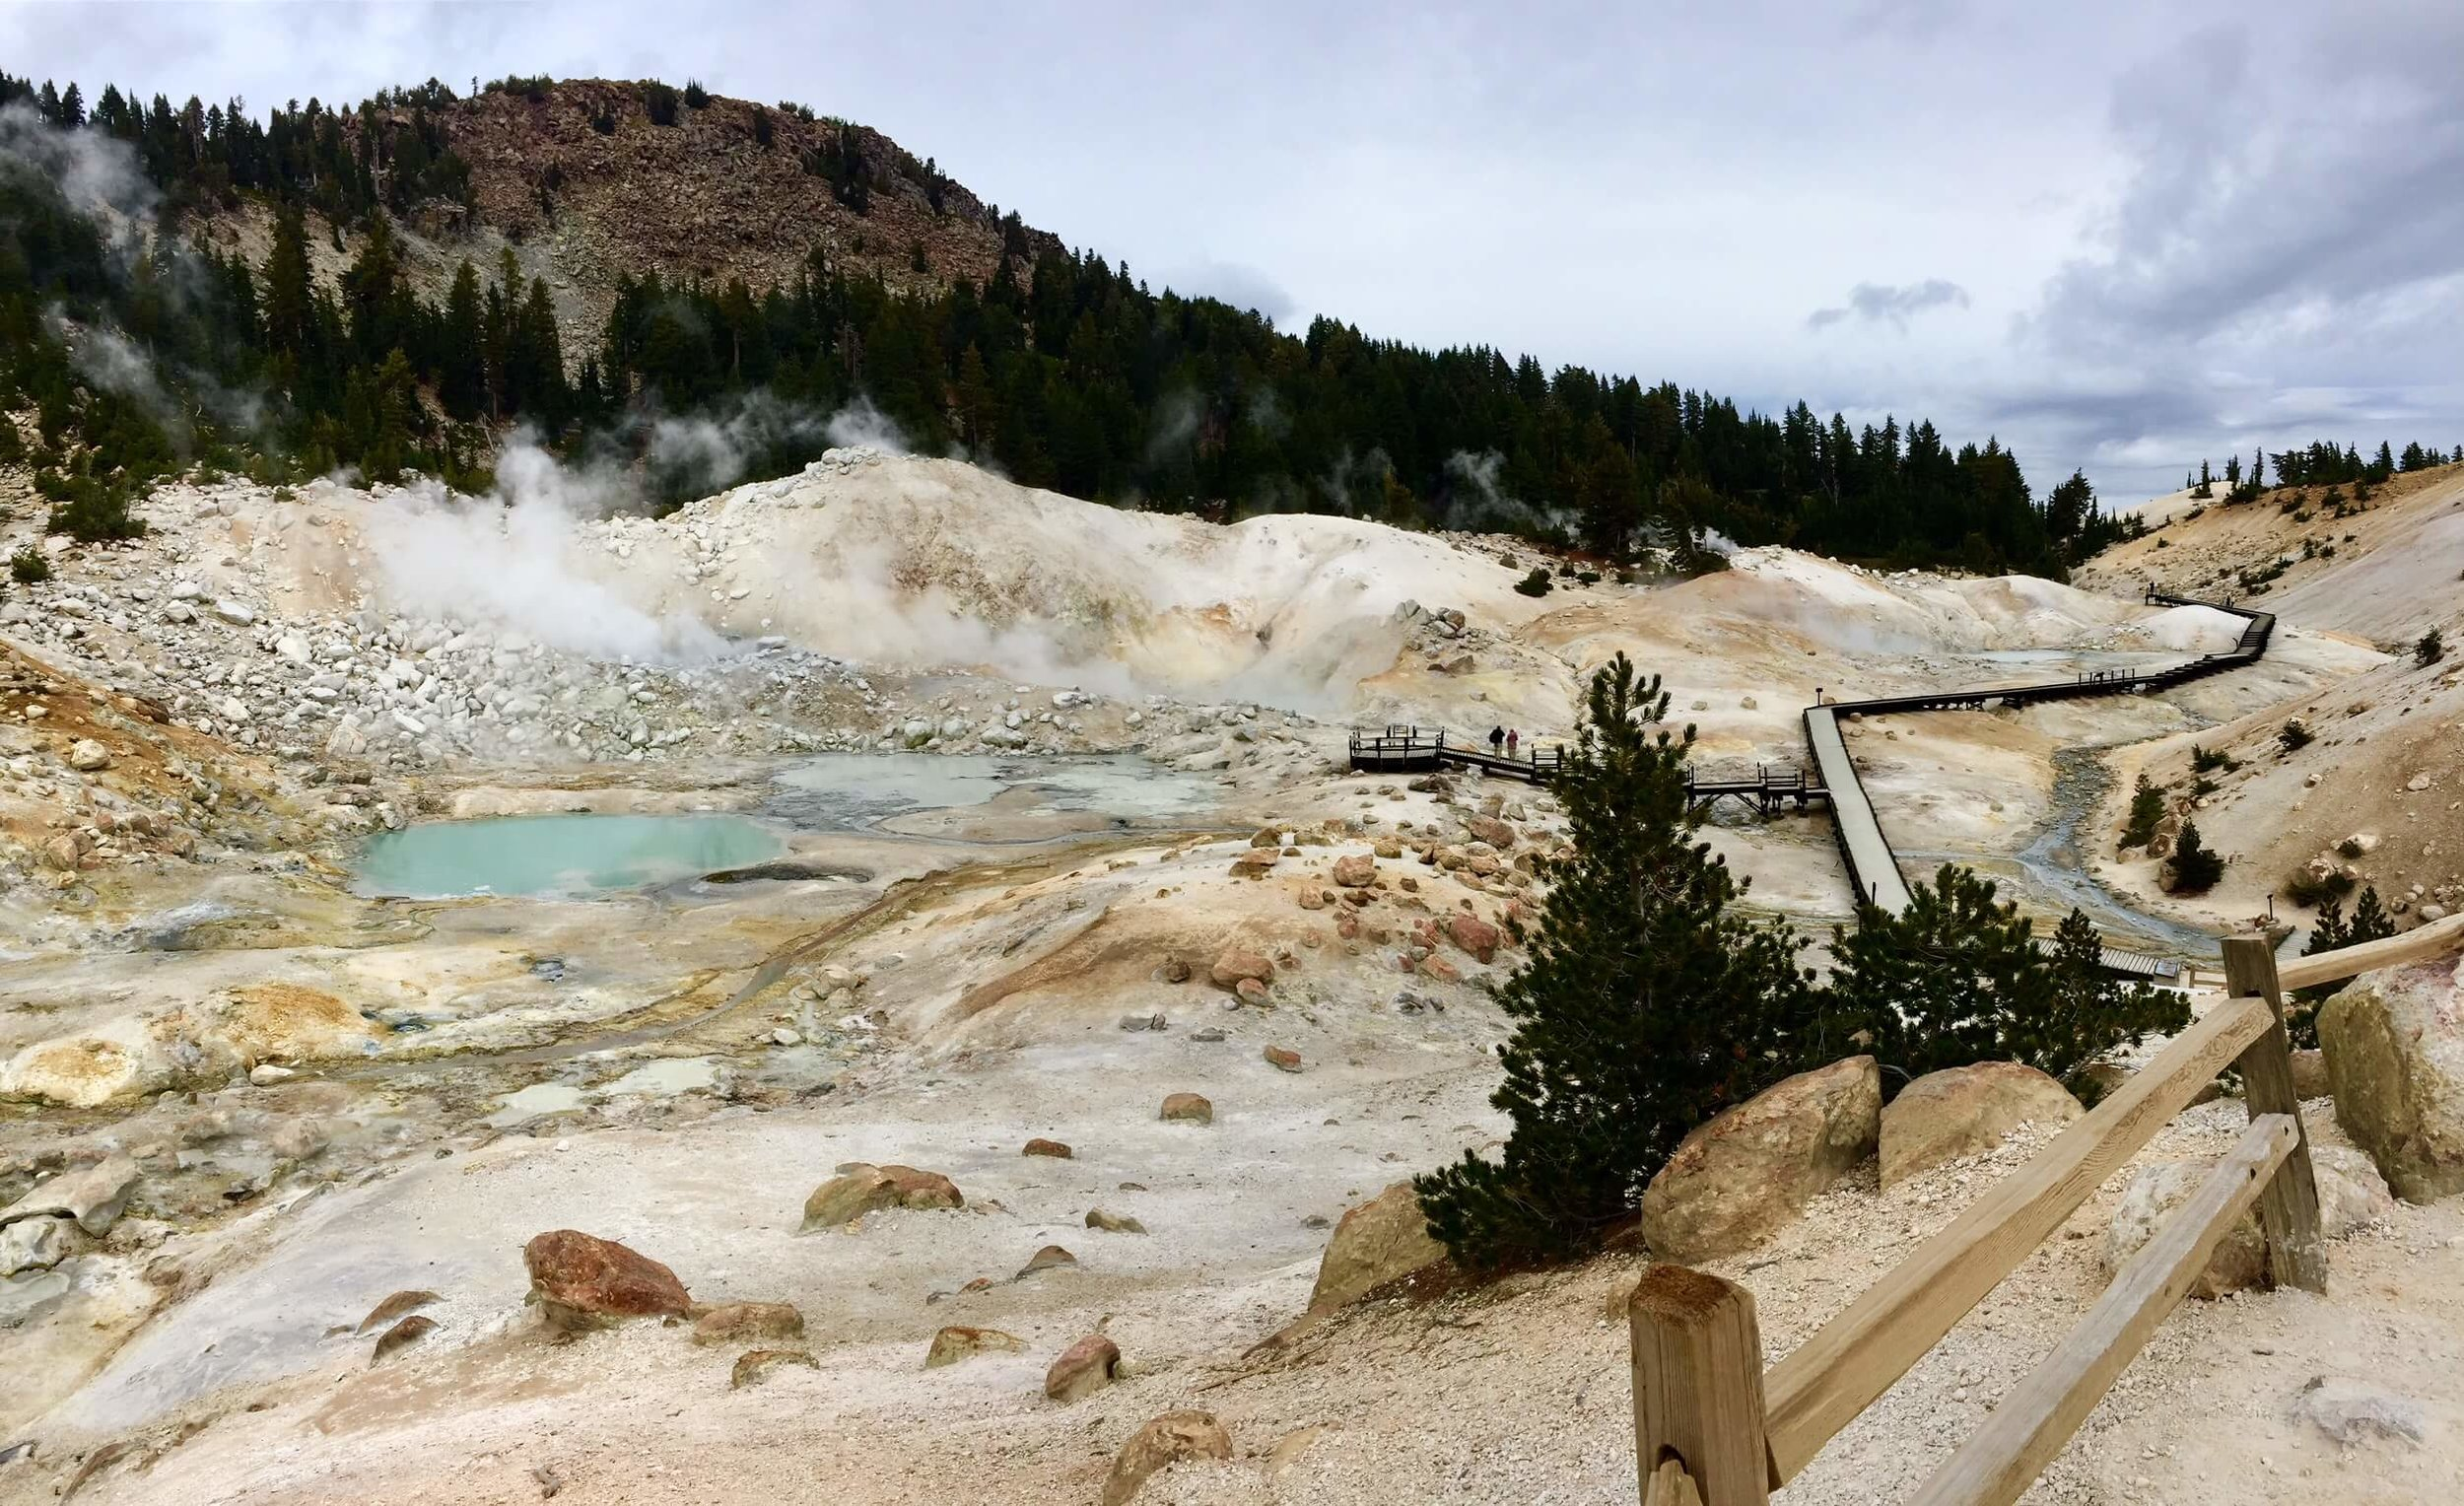 Boiling ponds of acidic water and death at Bumpass Hell.